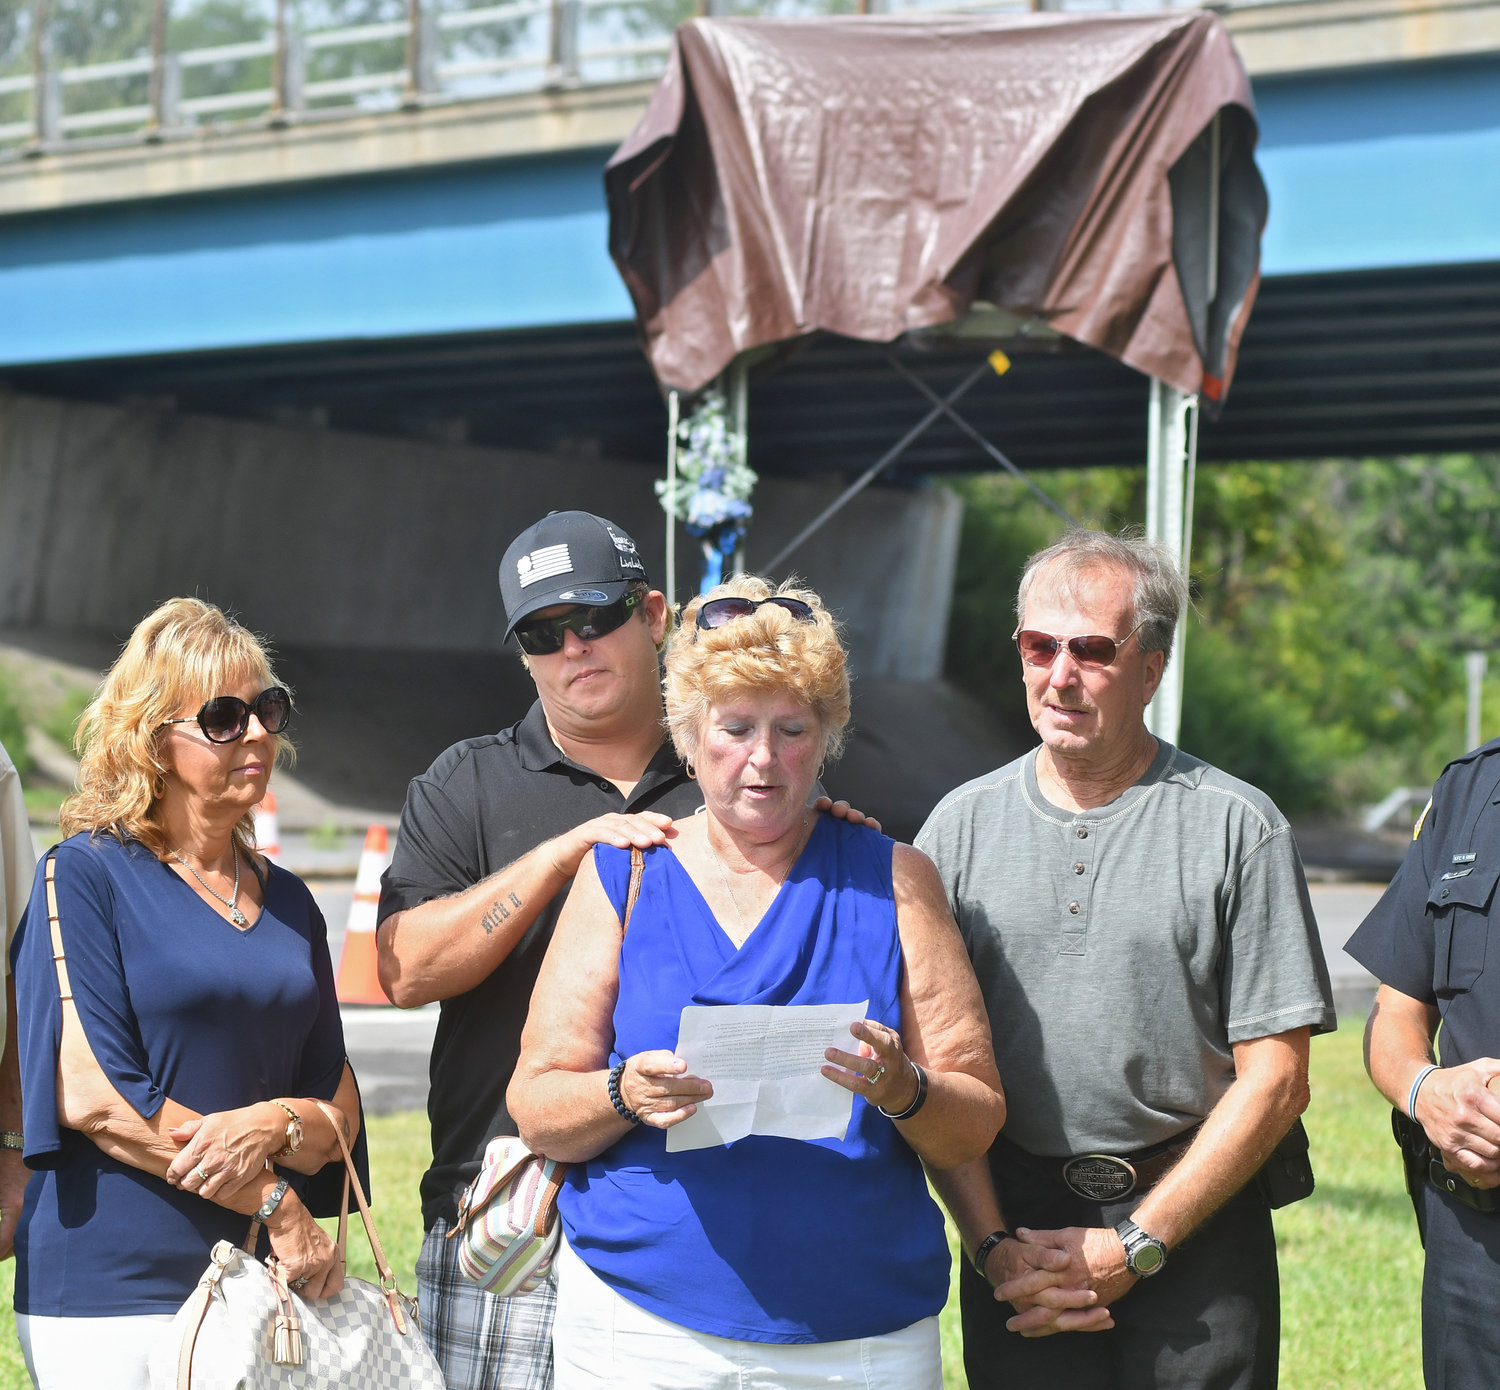 The Crossley family Natalie Beratta- girlfriend of Mike Crossley- older brother, Linda Crossley- mother and George Crossley listen to the prepared statement by mom LInda.